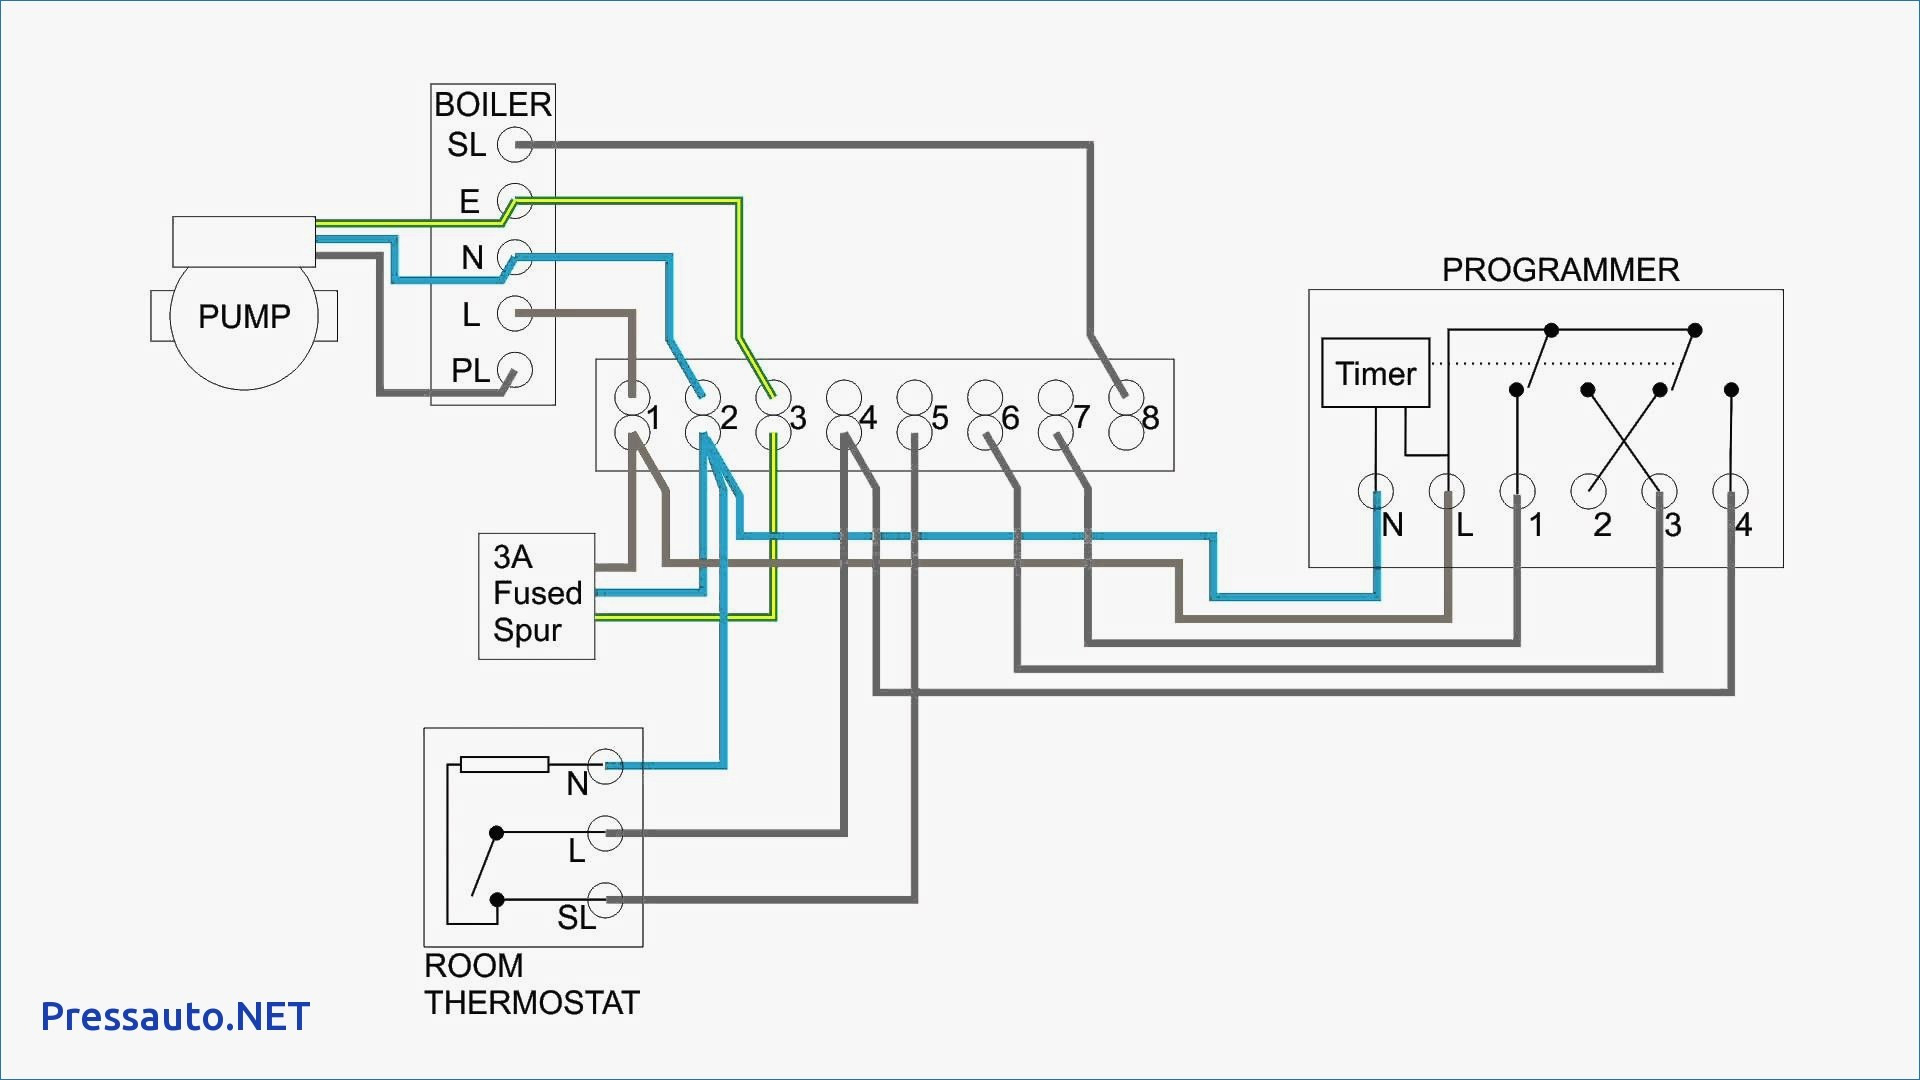 car heater wiring diagram wiring schematic diagram 184 skematic co Motor Contactor Wiring Diagram